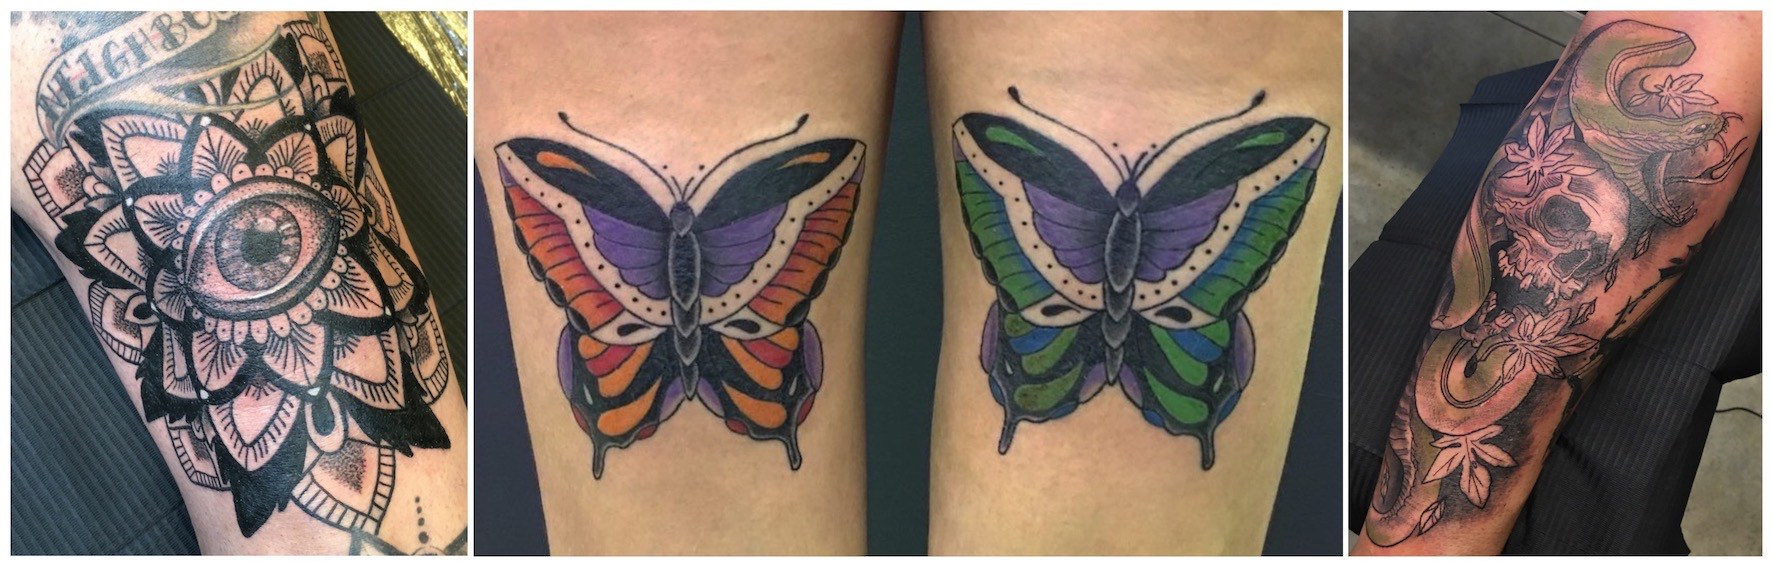 Tattoos done by Romi Ding